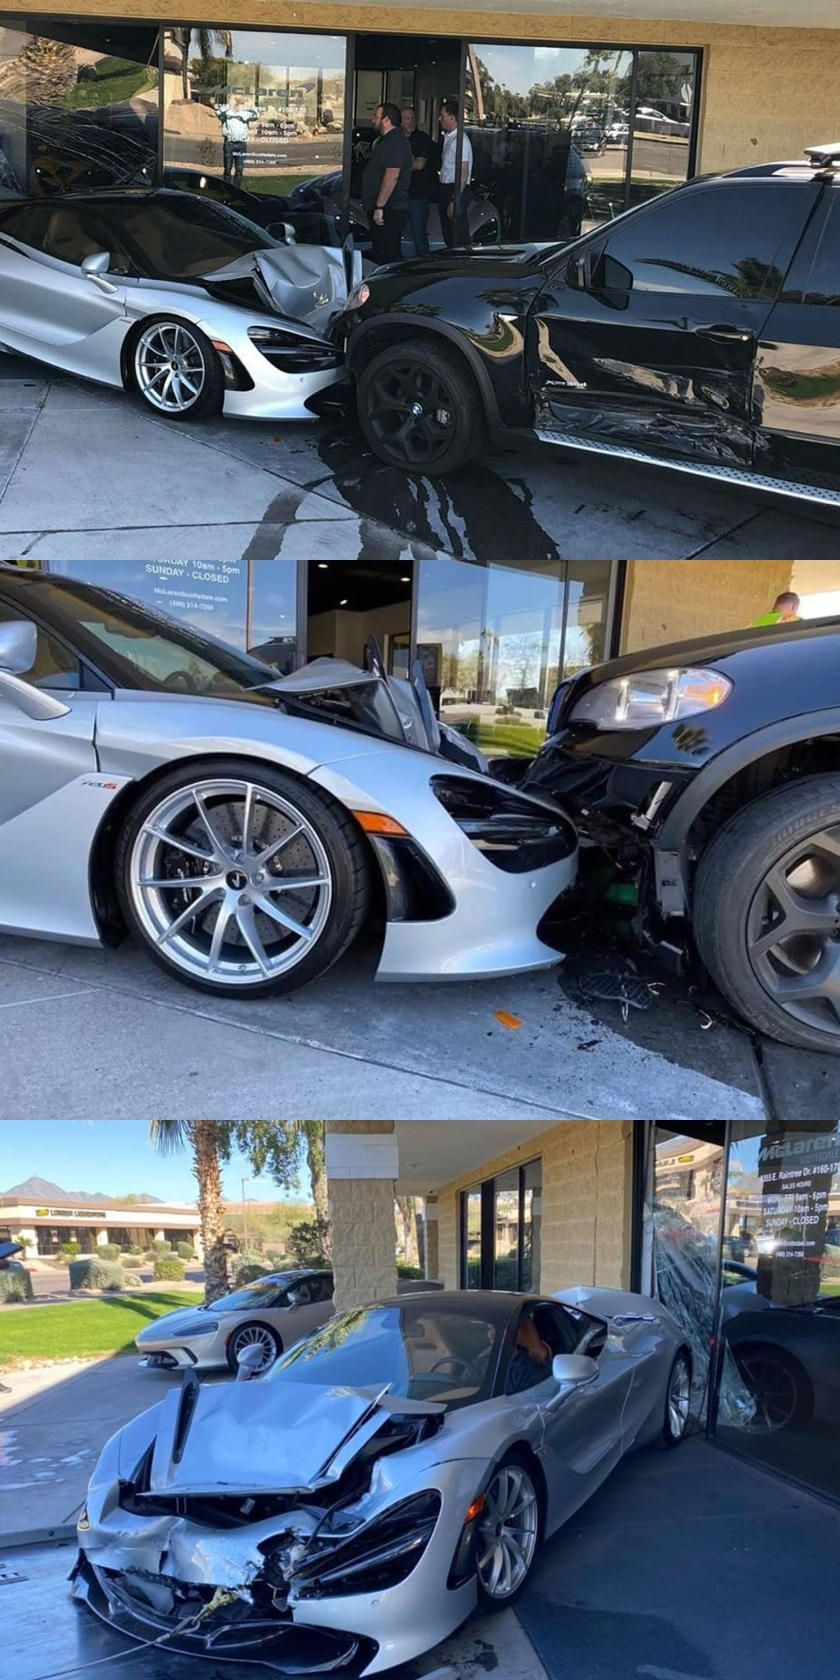 Bmw X5 Crashes Into An Entire Mclaren Dealership A 300000 Mclaren 720s Was Particularly Mangled In 2020 Bmw Bmw X5 Dealership